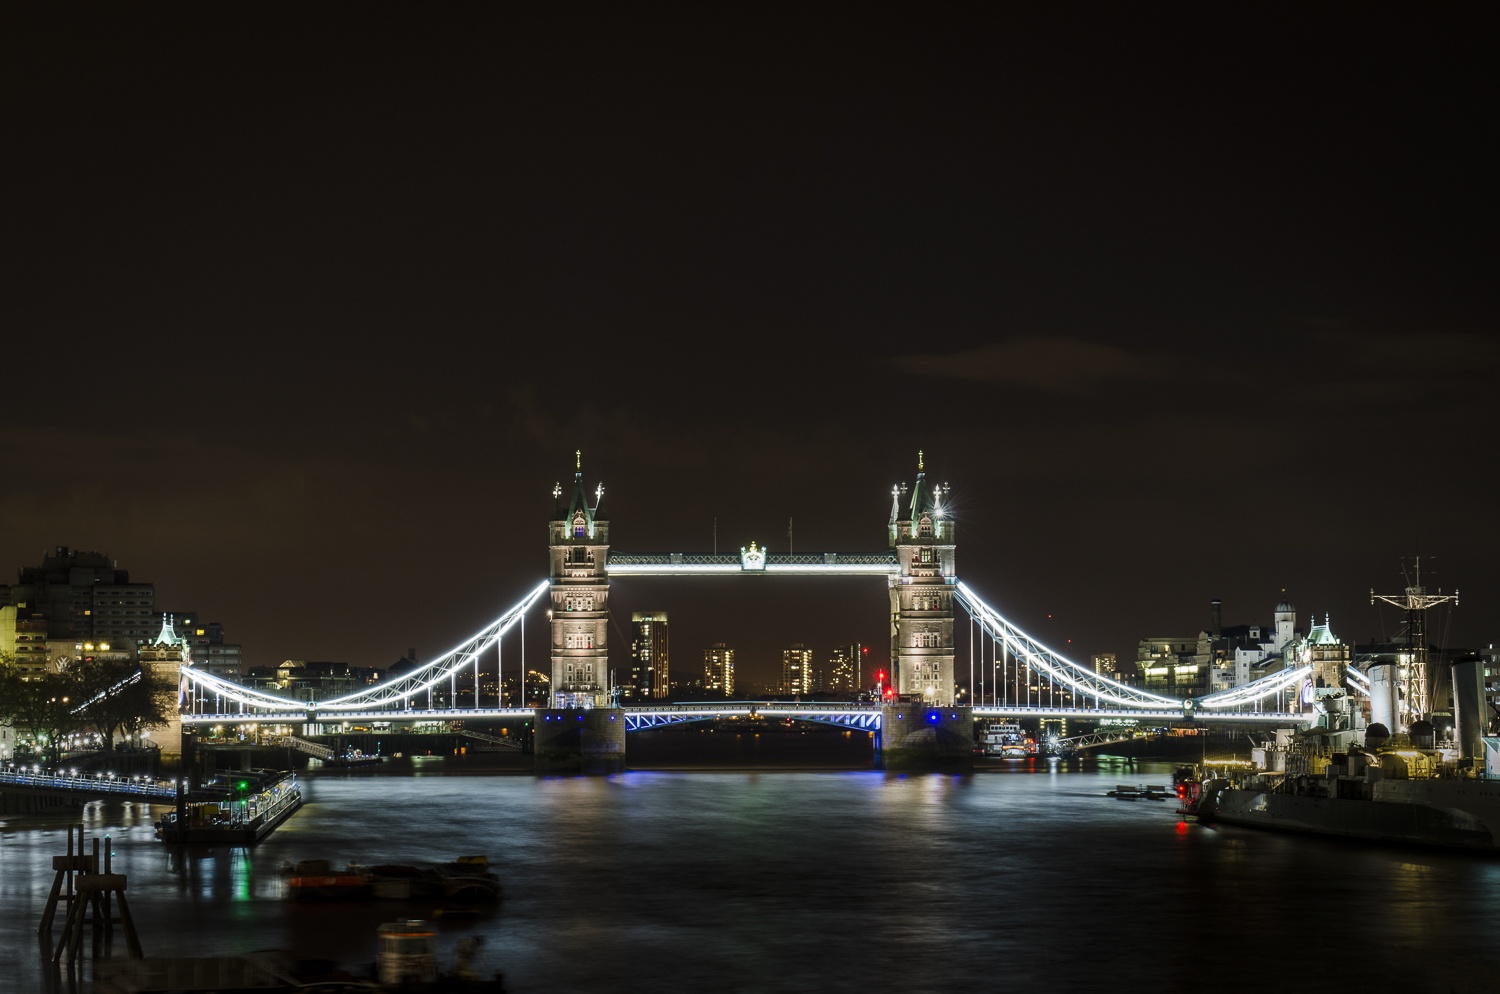 "From London Bridge  Photography: Alexander J.E. Bradley - Nikon D7000 - AF-S NIKKOR 24-70mm f/2.8G ED @ 50mm - f/11 - 30"" - ISO:100"